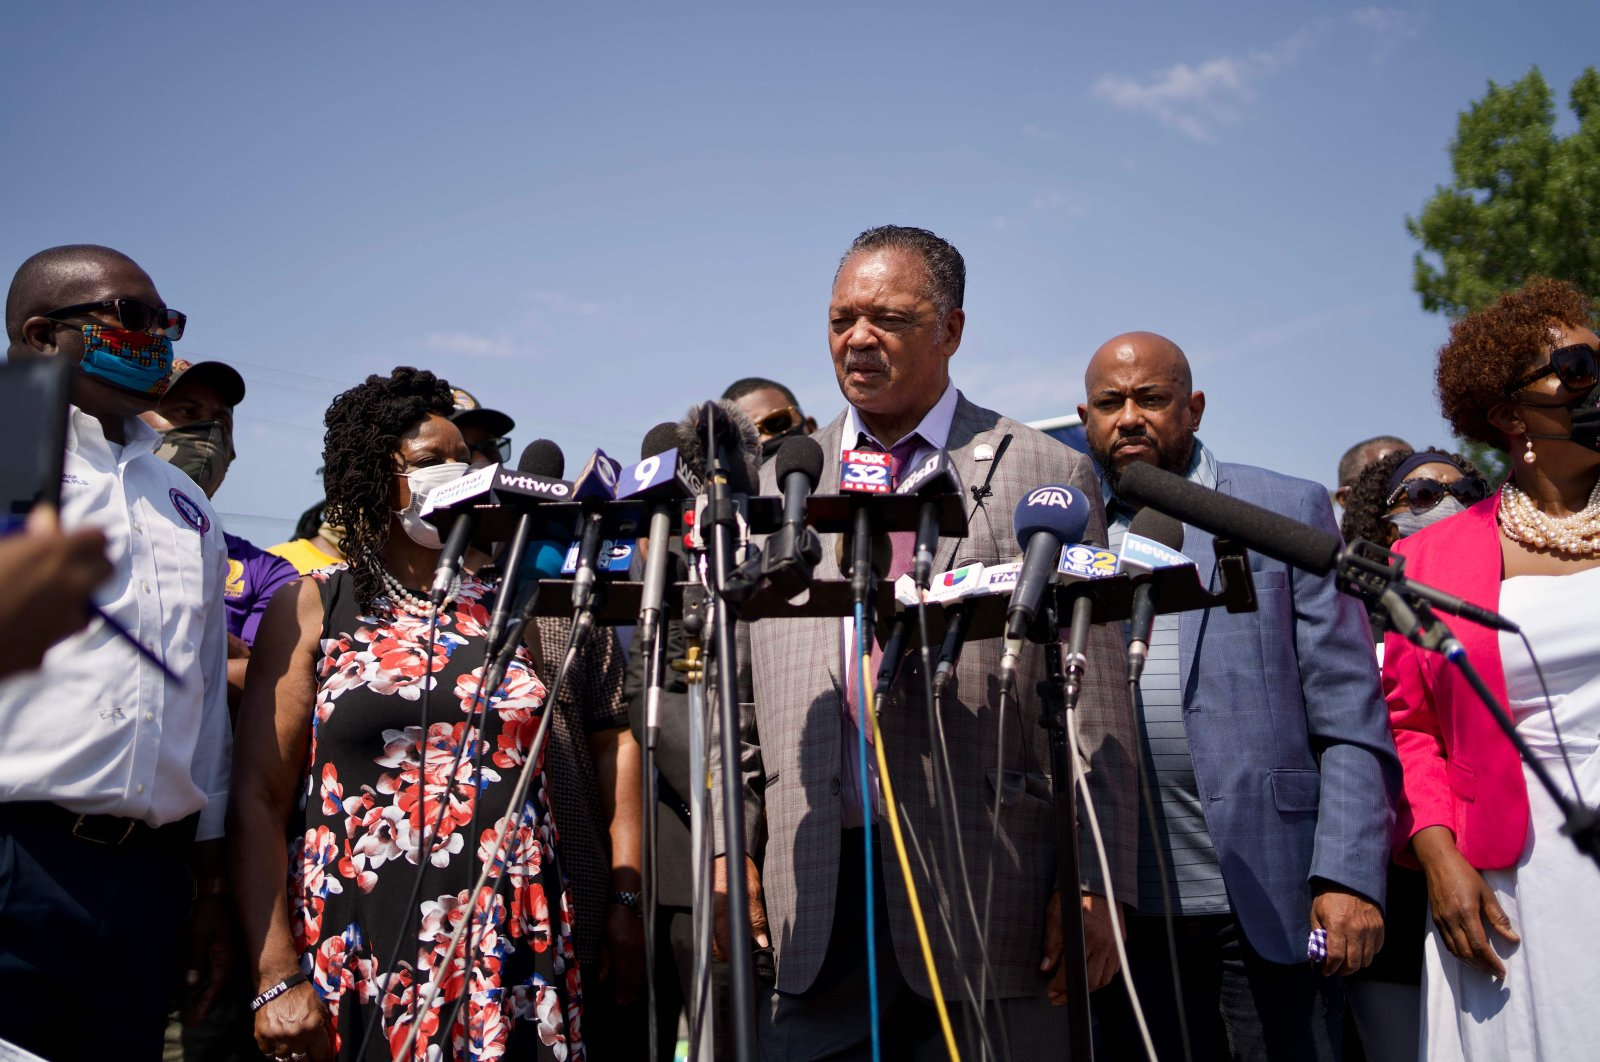 Rev. Jesse Jackson (C), officials from the Kenosha, Wisconsin NAACP, the Urban League and the League of United Latin American Citizens hold a press conference in Kenosha, Wisconsin, to address the police shooting of Jacob Blake, Jr., Aug. 27, 2020. (Photo by Kerem Yucel / AFP)